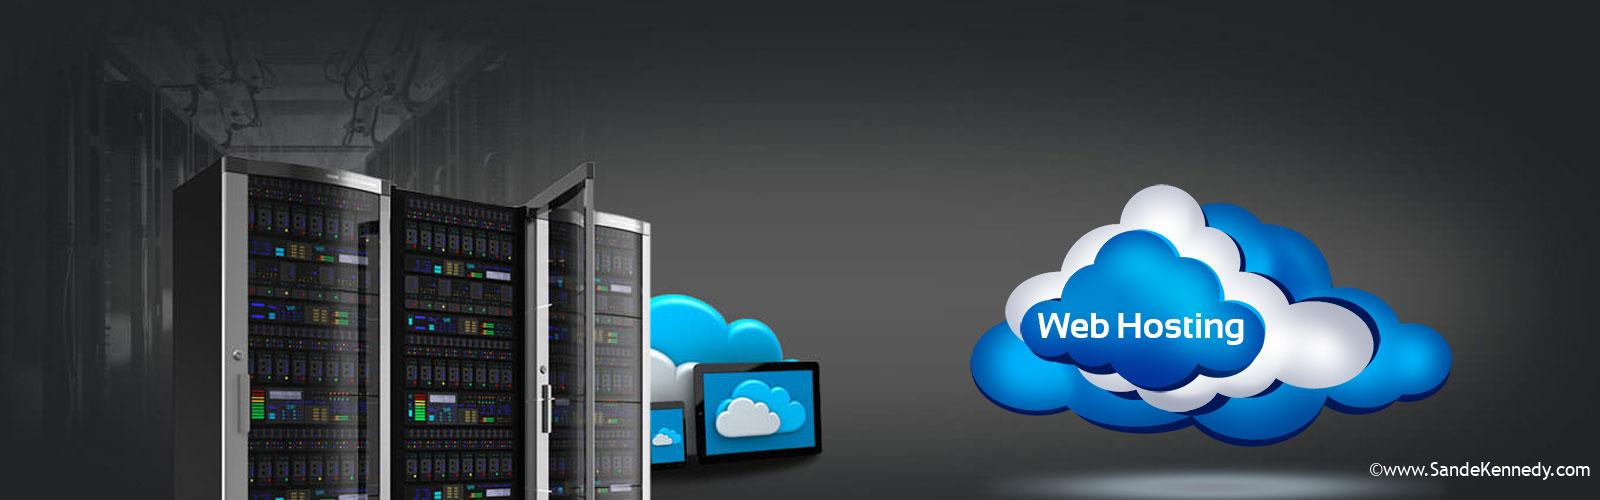 20 Popular Web Hosting Services Providers: Who's Best for Small Business